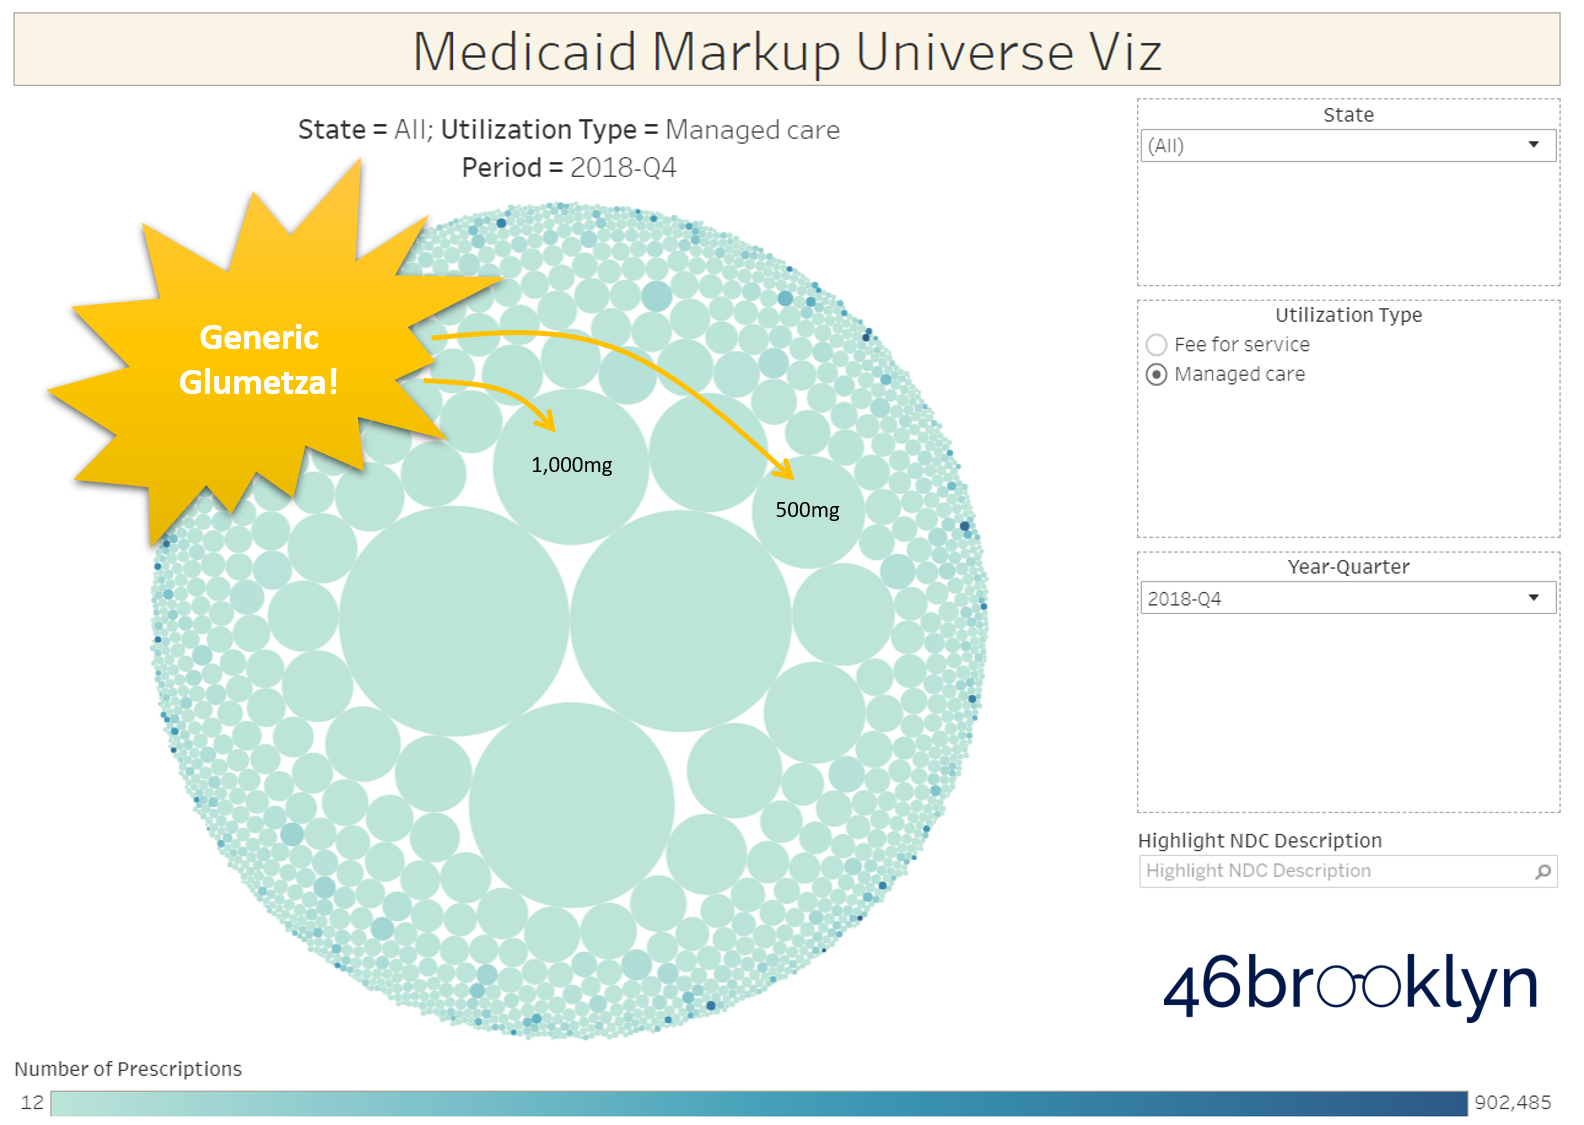 Figure 5   Source: Data.Medicaid.gov, 46brooklyn Research